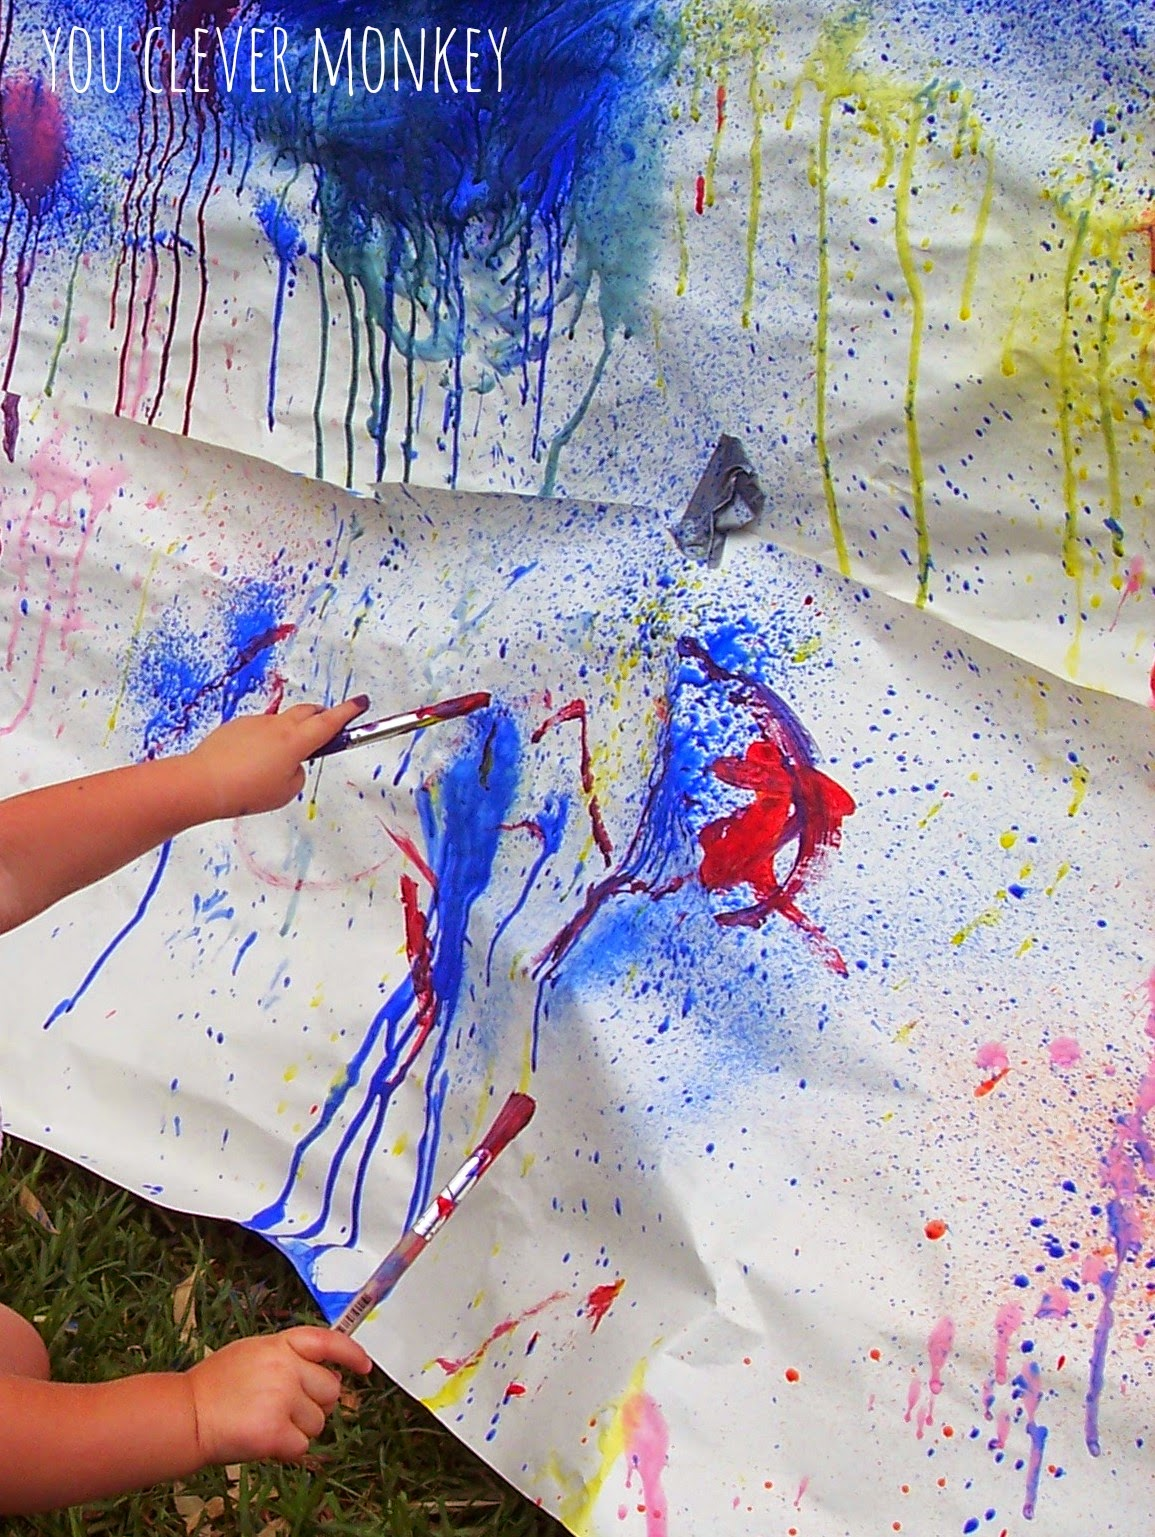 Big Art - fun art activities that will get kids moving while making.  For more, visit http://youclevermonkey.com/